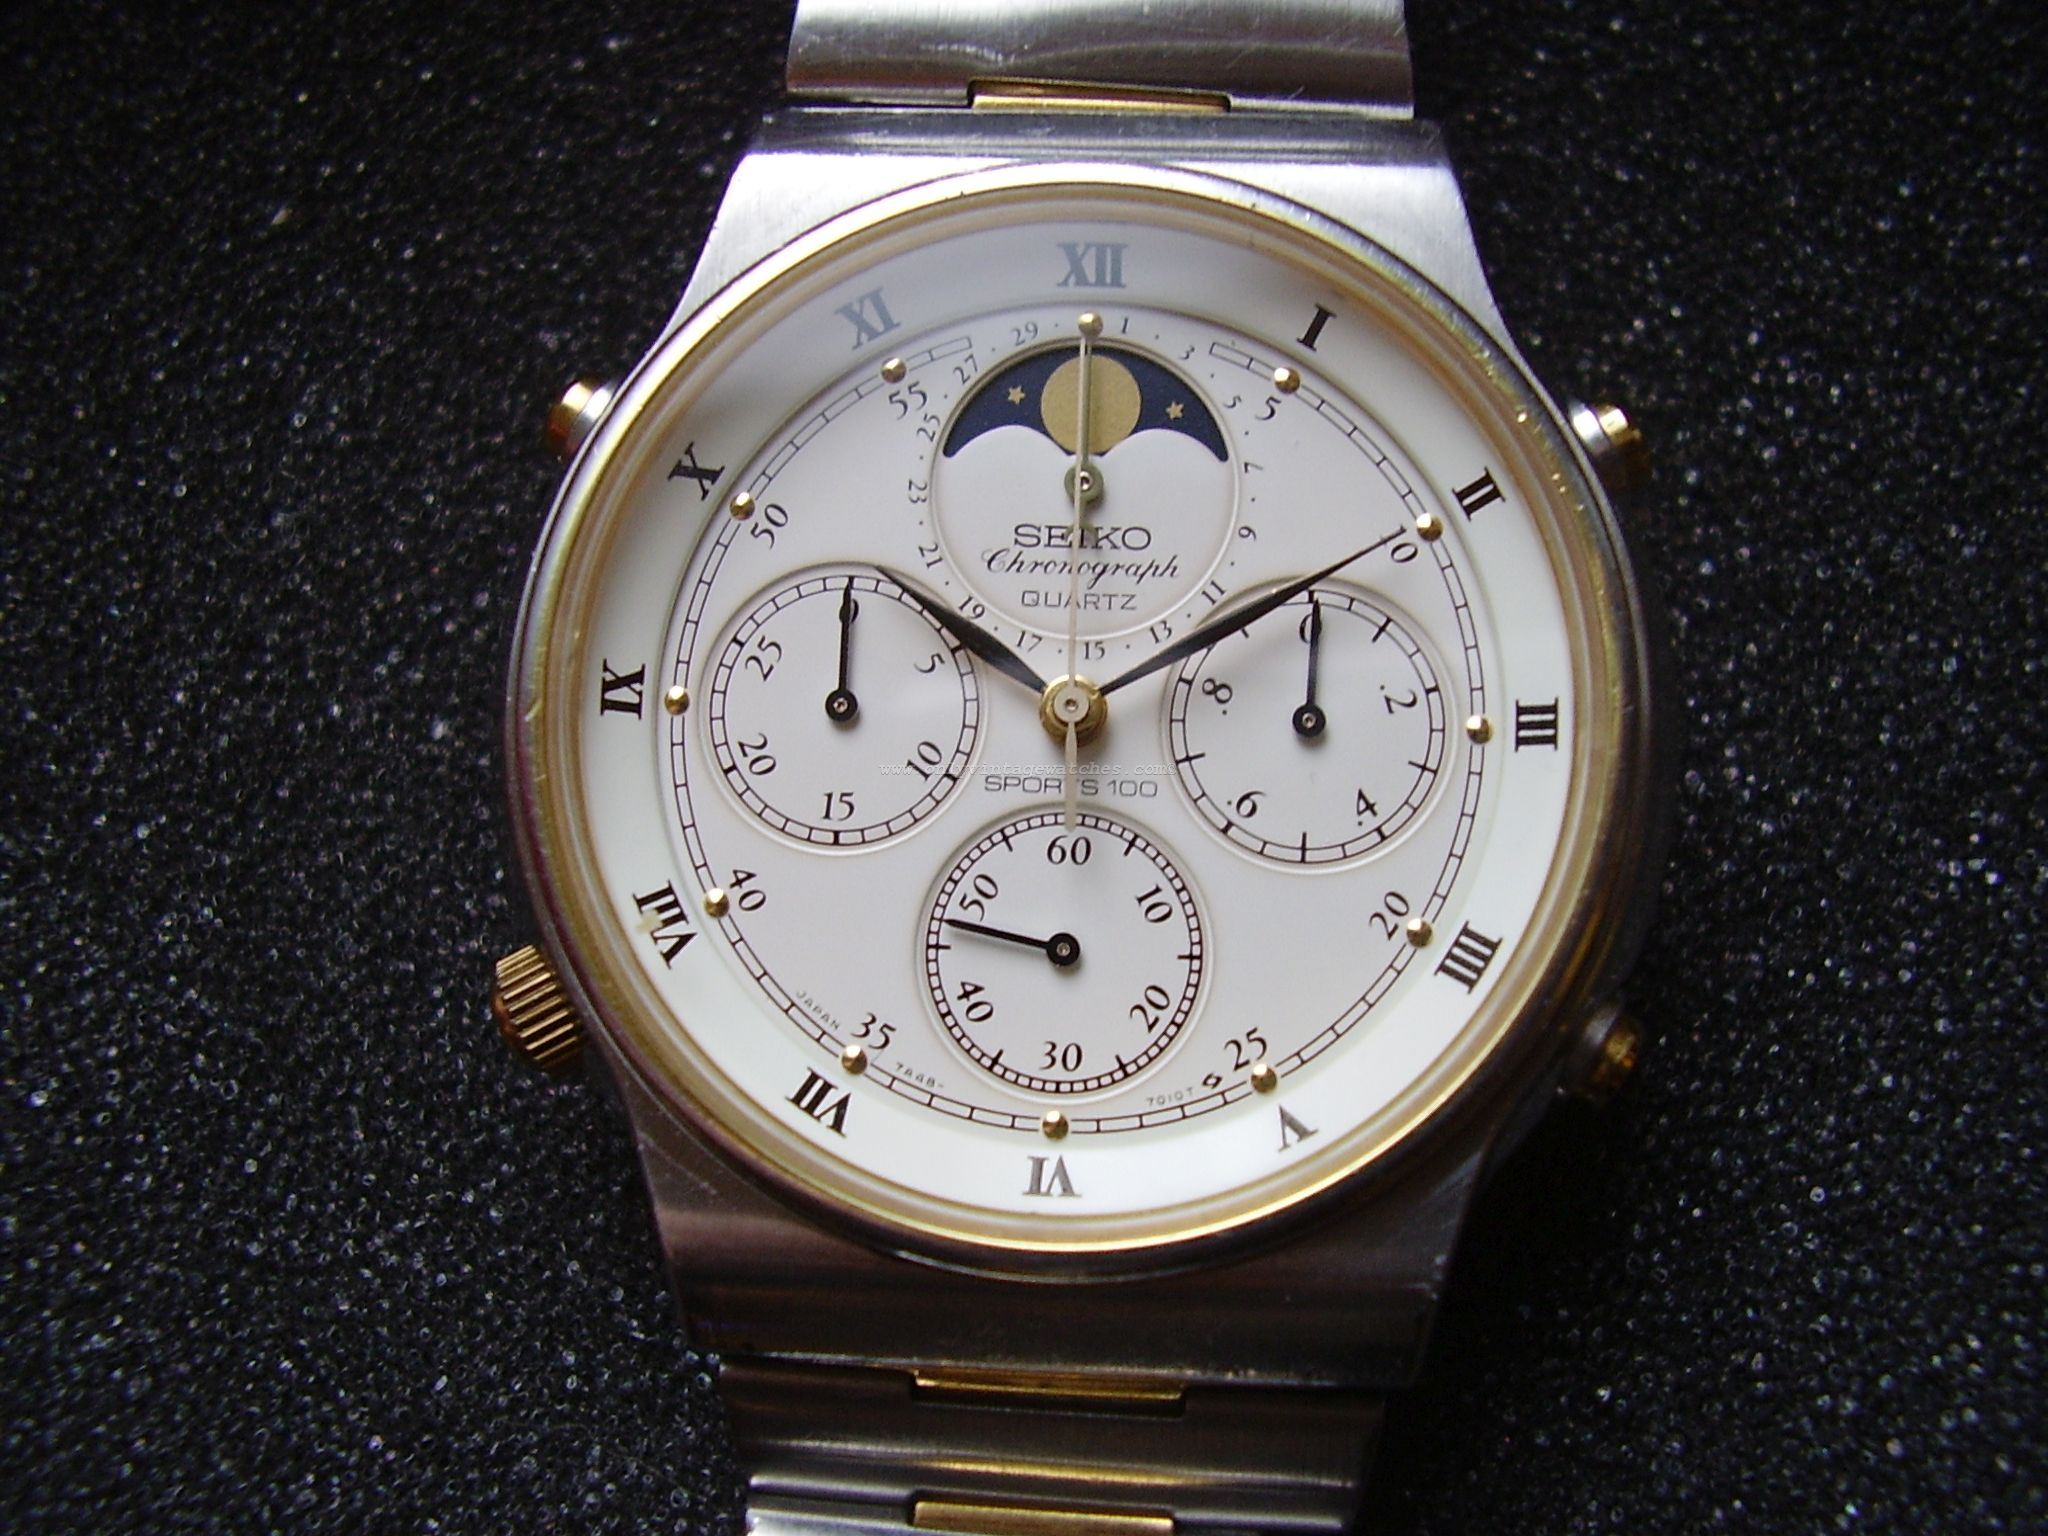 this many and s don when been quartz years me the friend seiko bought with has watchopenia a shop how know visited early watches in not alarm t too watch chronograph suburban img around electrical area